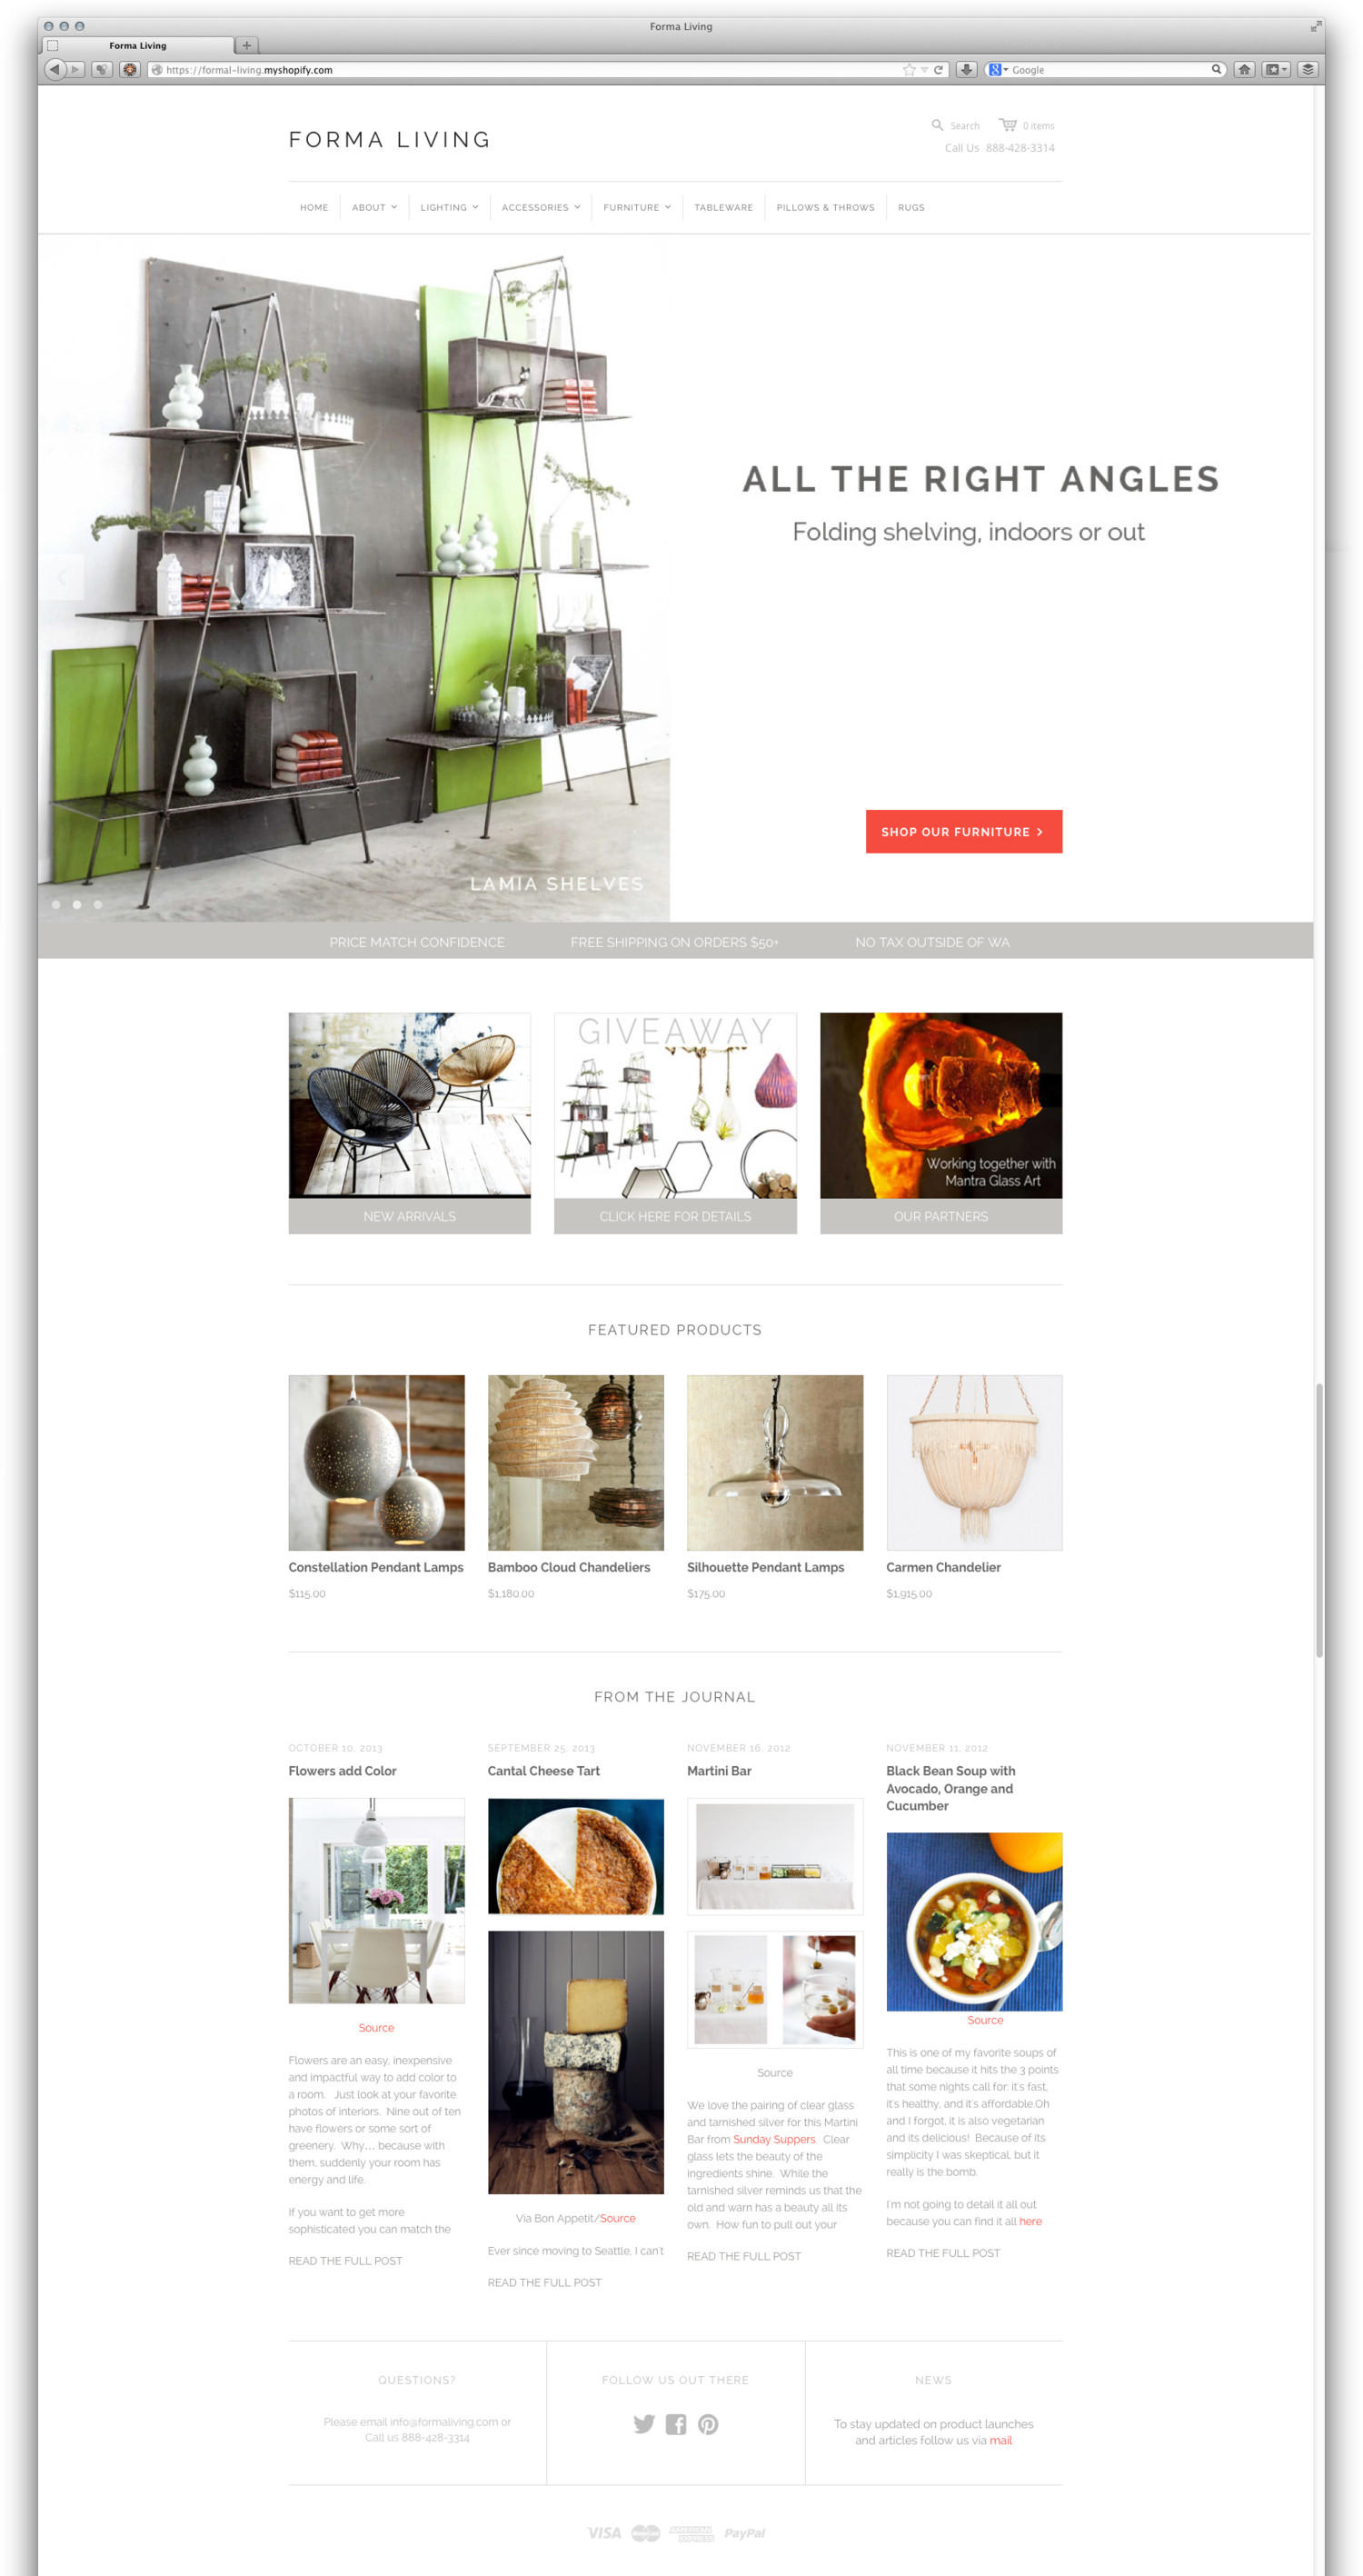 Shopify Store Setup/Creation by VanessaKing - 85122